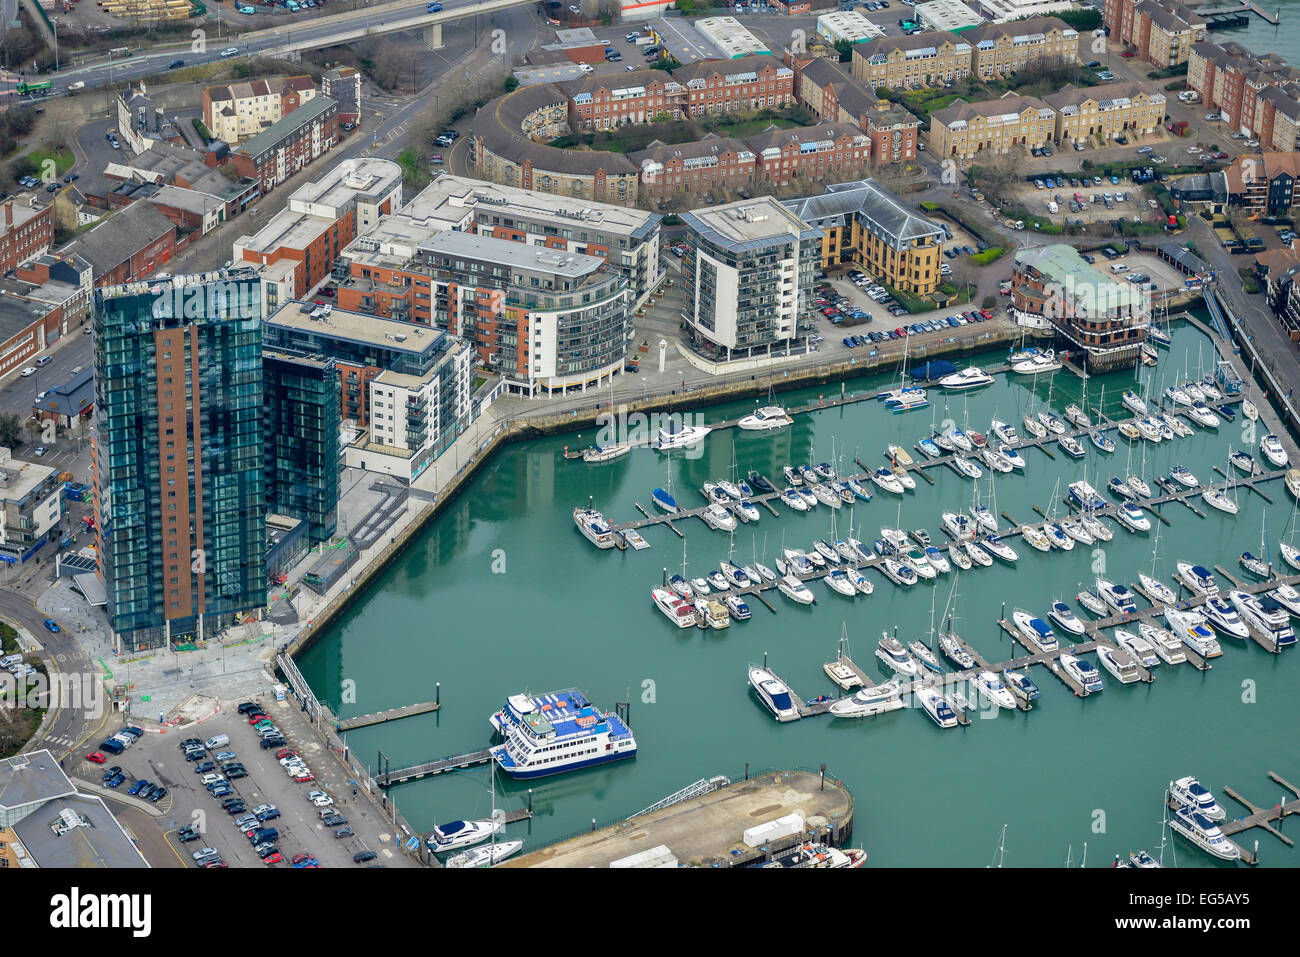 An aerial view of the Ocean Village Marina in Southampton - Stock Image